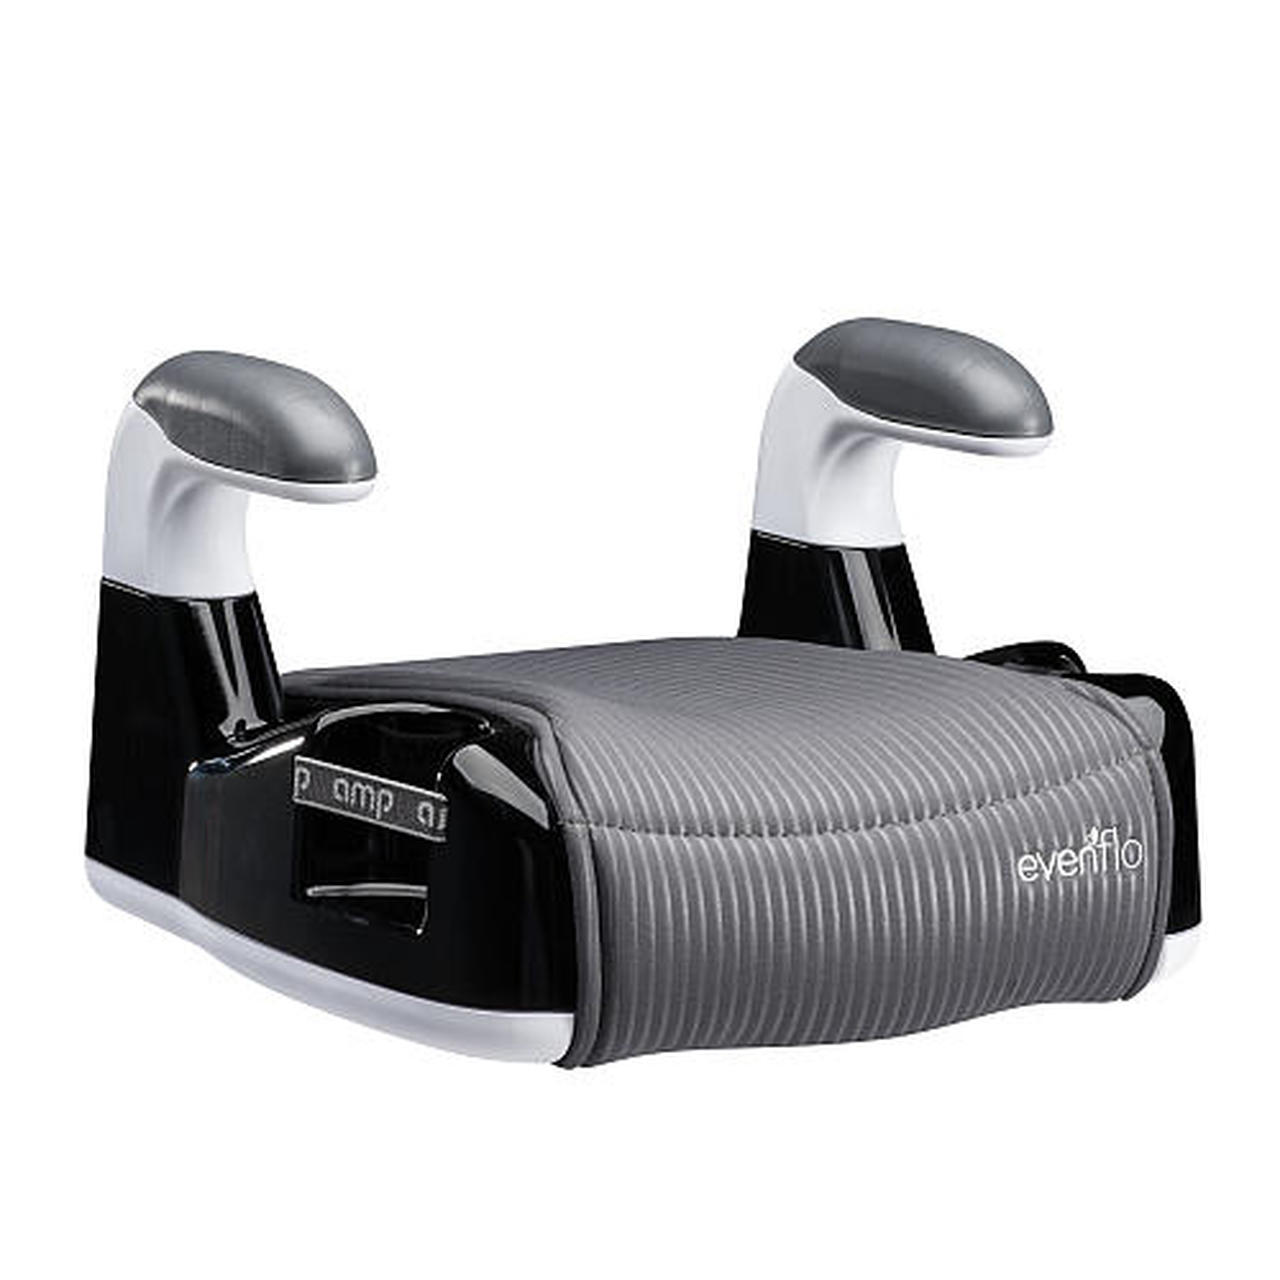 Evenflo LX No Back Booster Seat